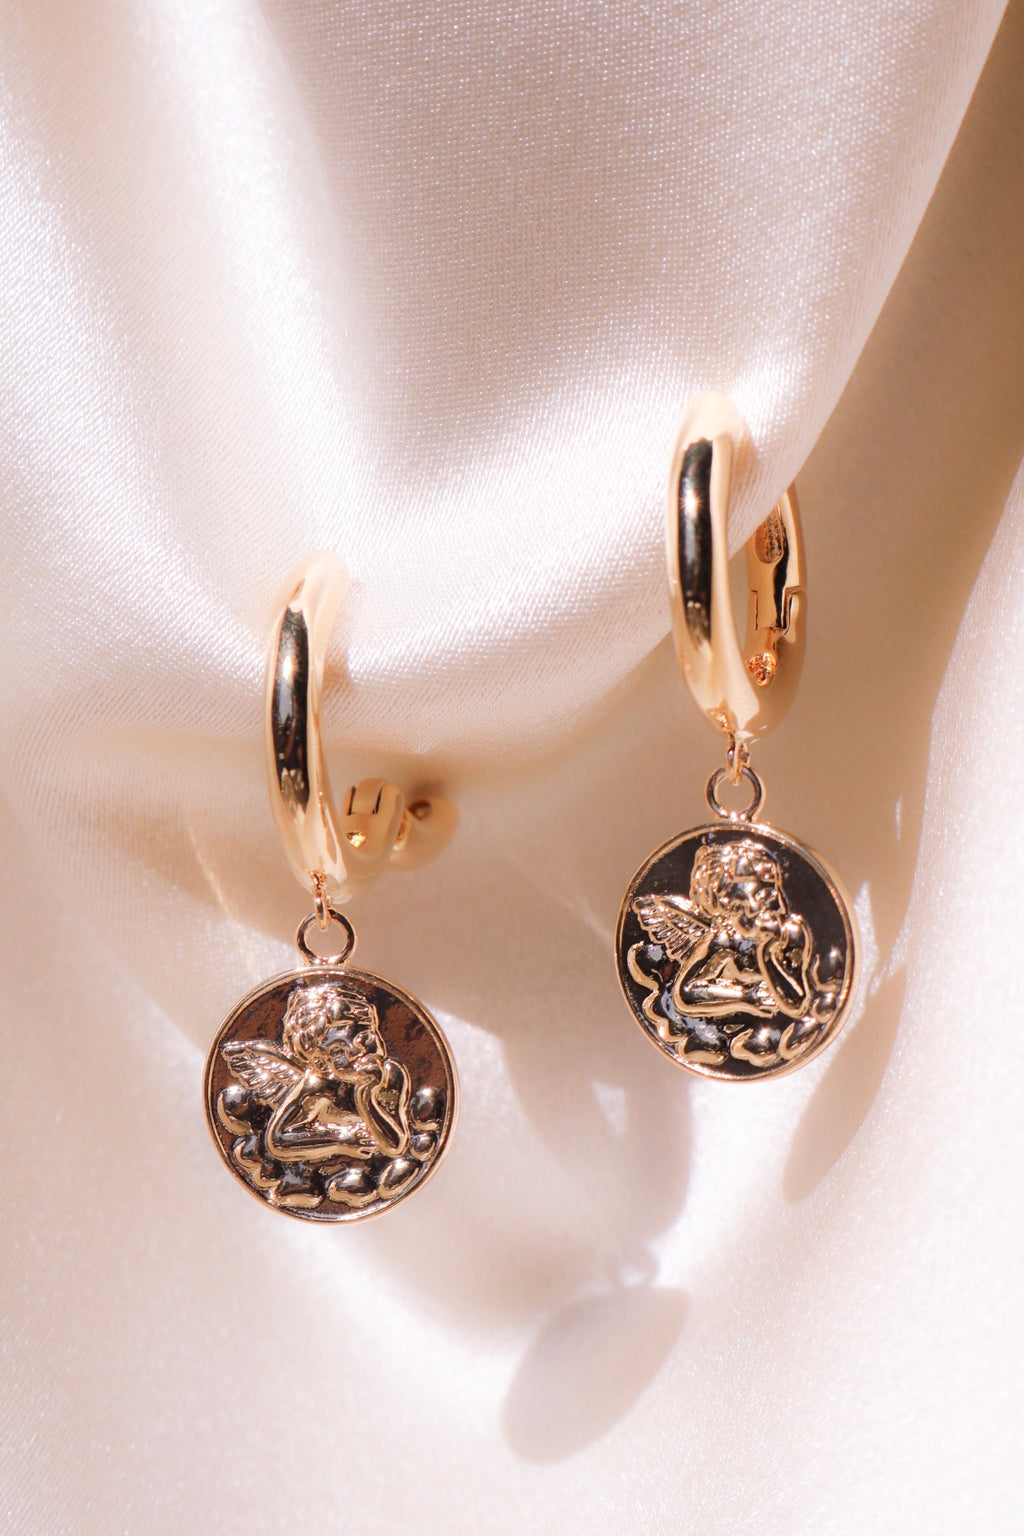 Drop earrings with angel engraving